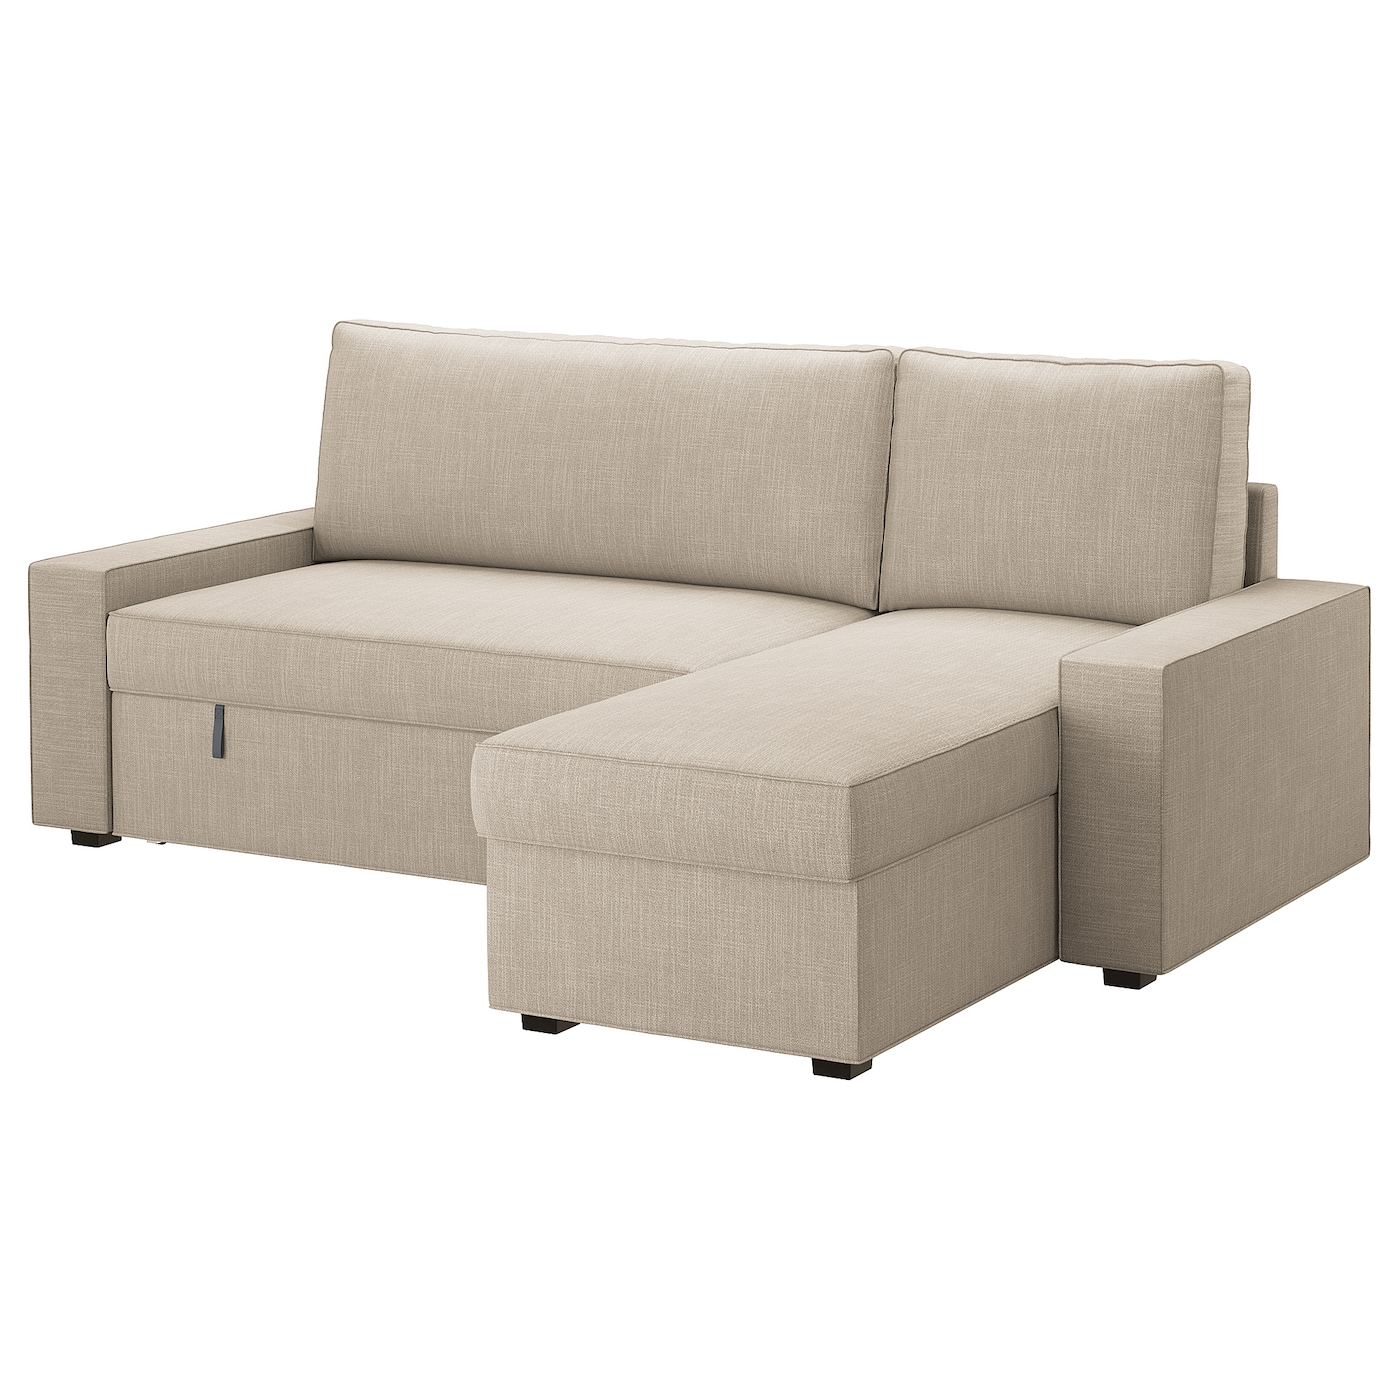 Vilasund sofa bed with chaise longue hillared beige ikea for Chaise longue jardin ikea